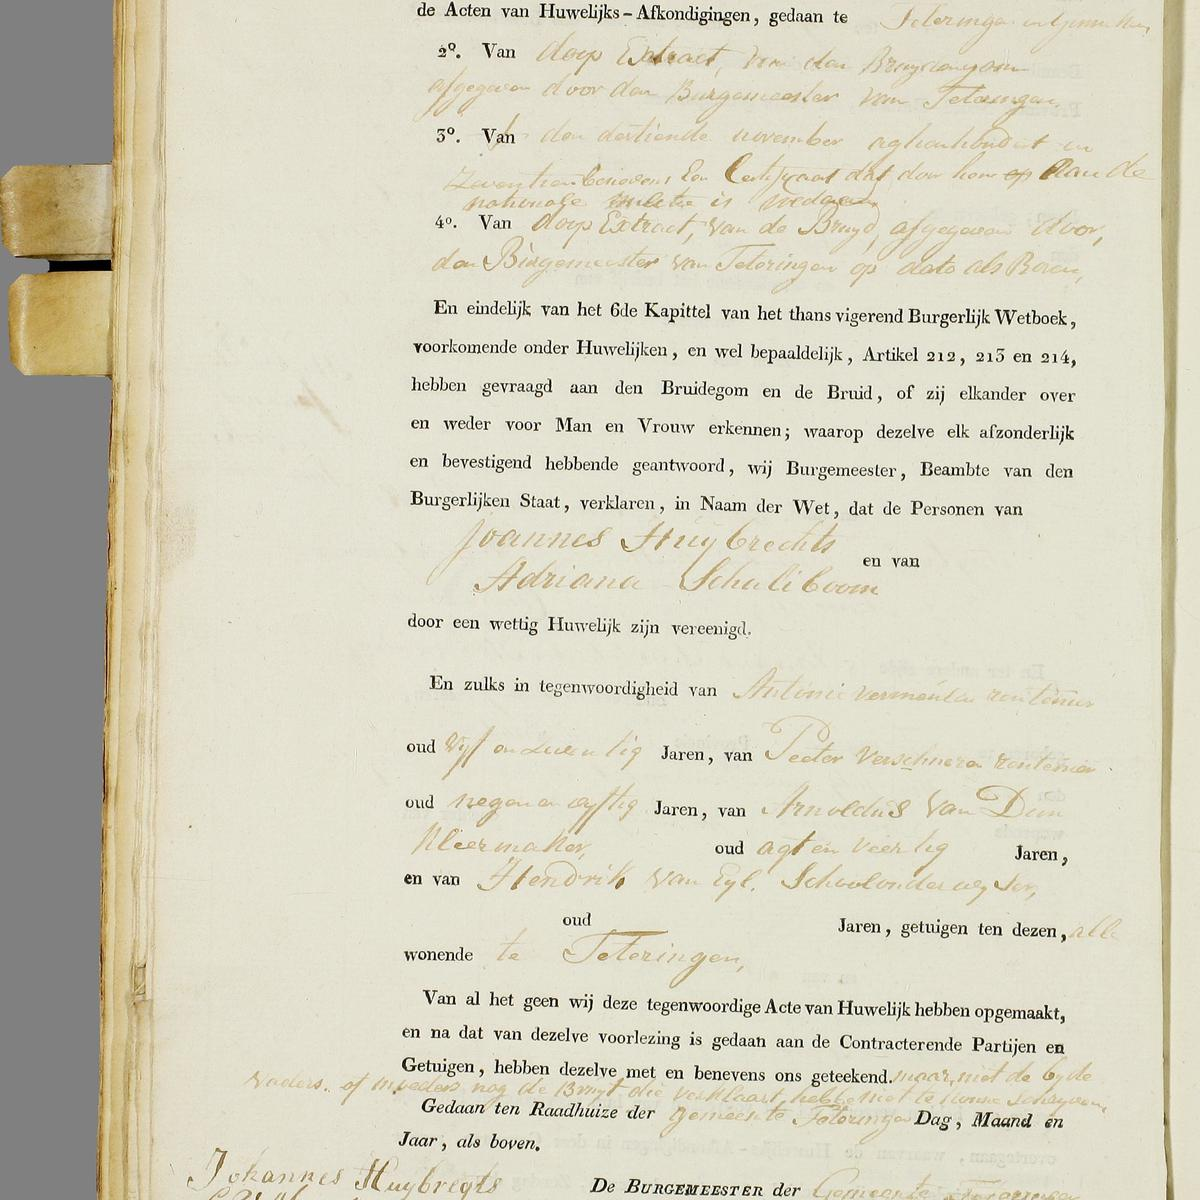 Civil registry of marriages, Teteringen,1817, record 5, left page